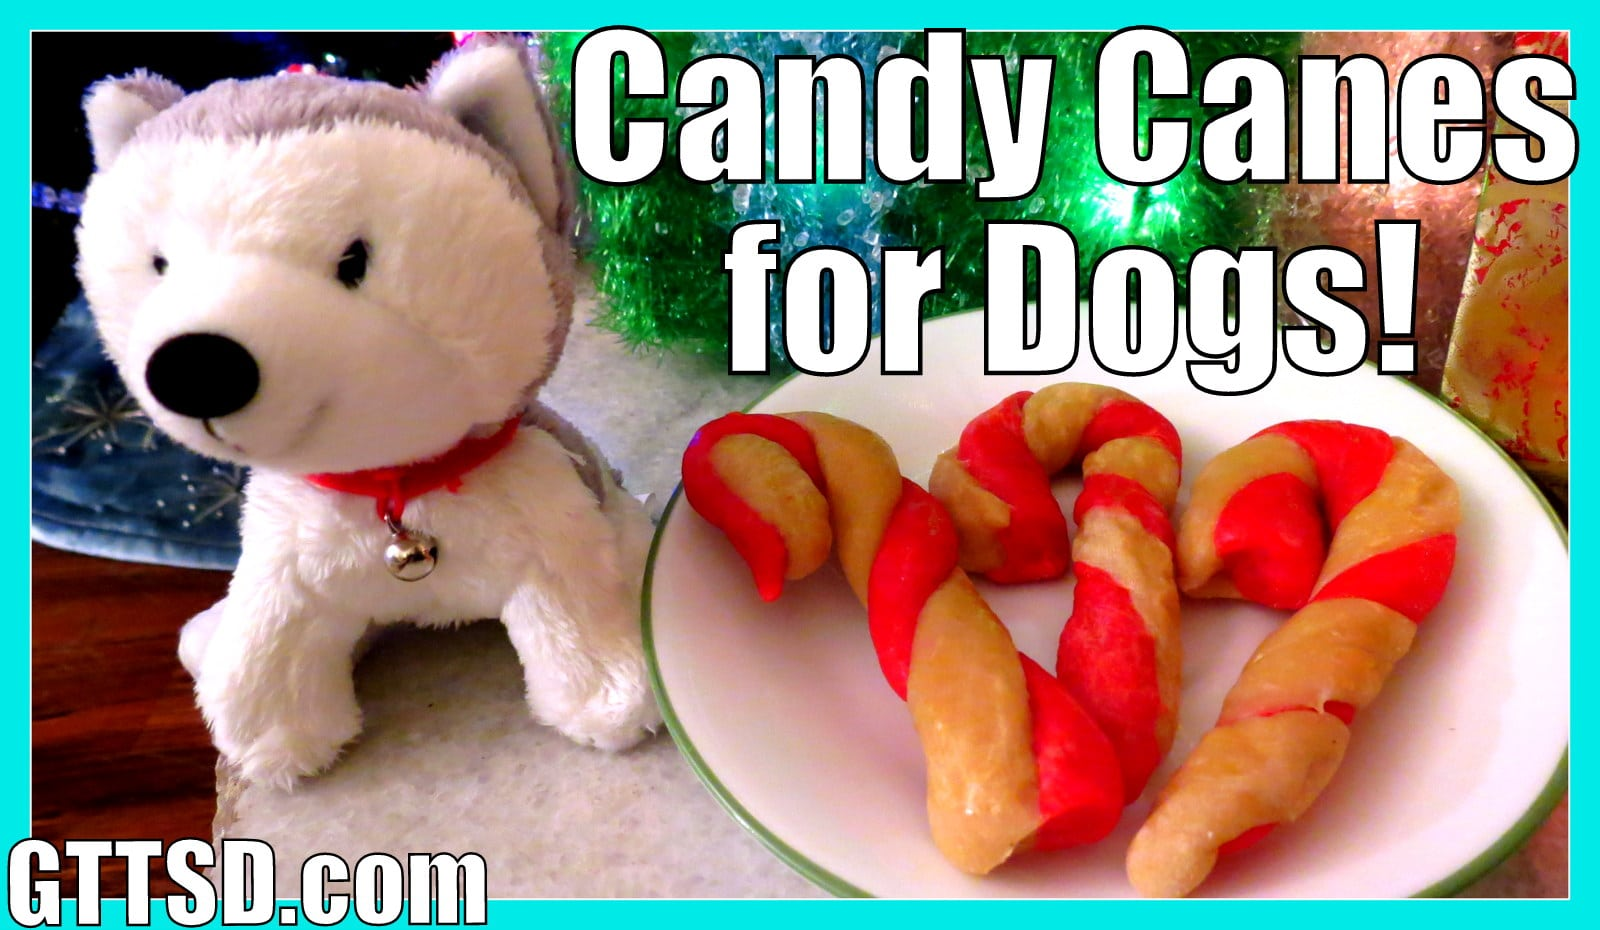 Candy Canes for Dogs